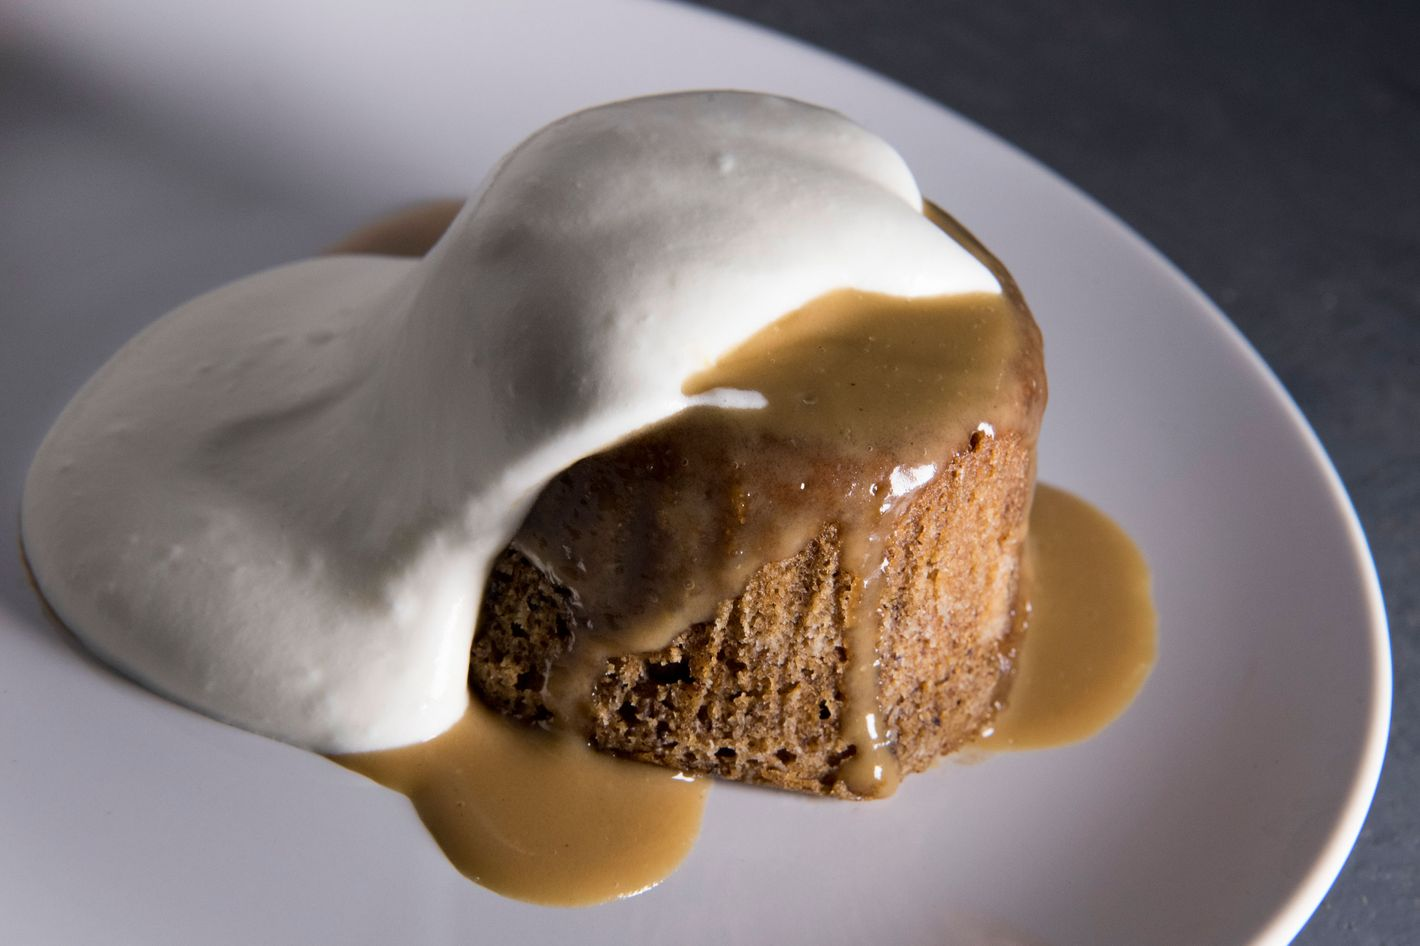 For dessert: sticky date bread pudding with Earl Grey toffee and lemon whipped cream.